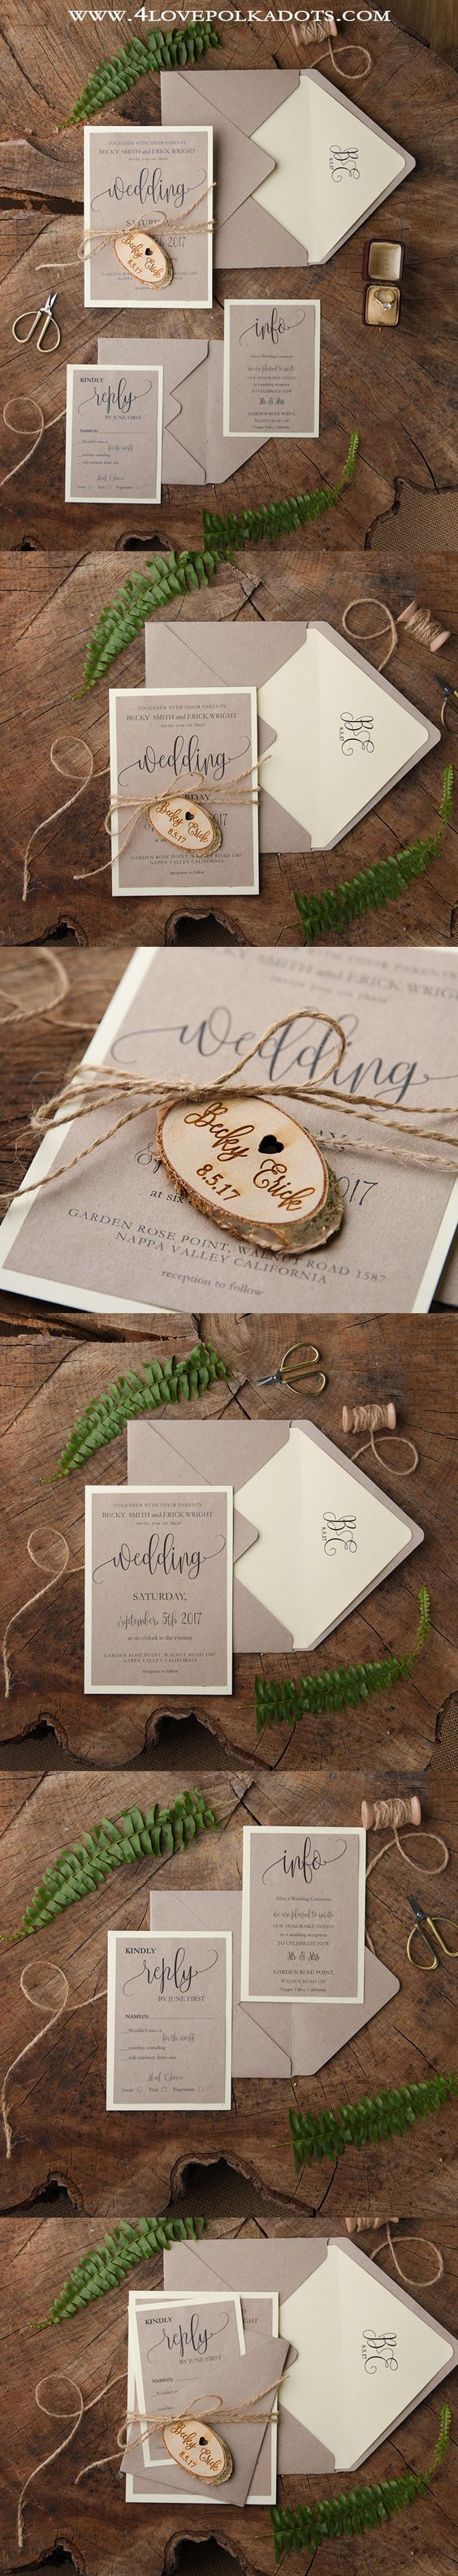 WEDDING INVITATIONS wood 103 best Your Wedding